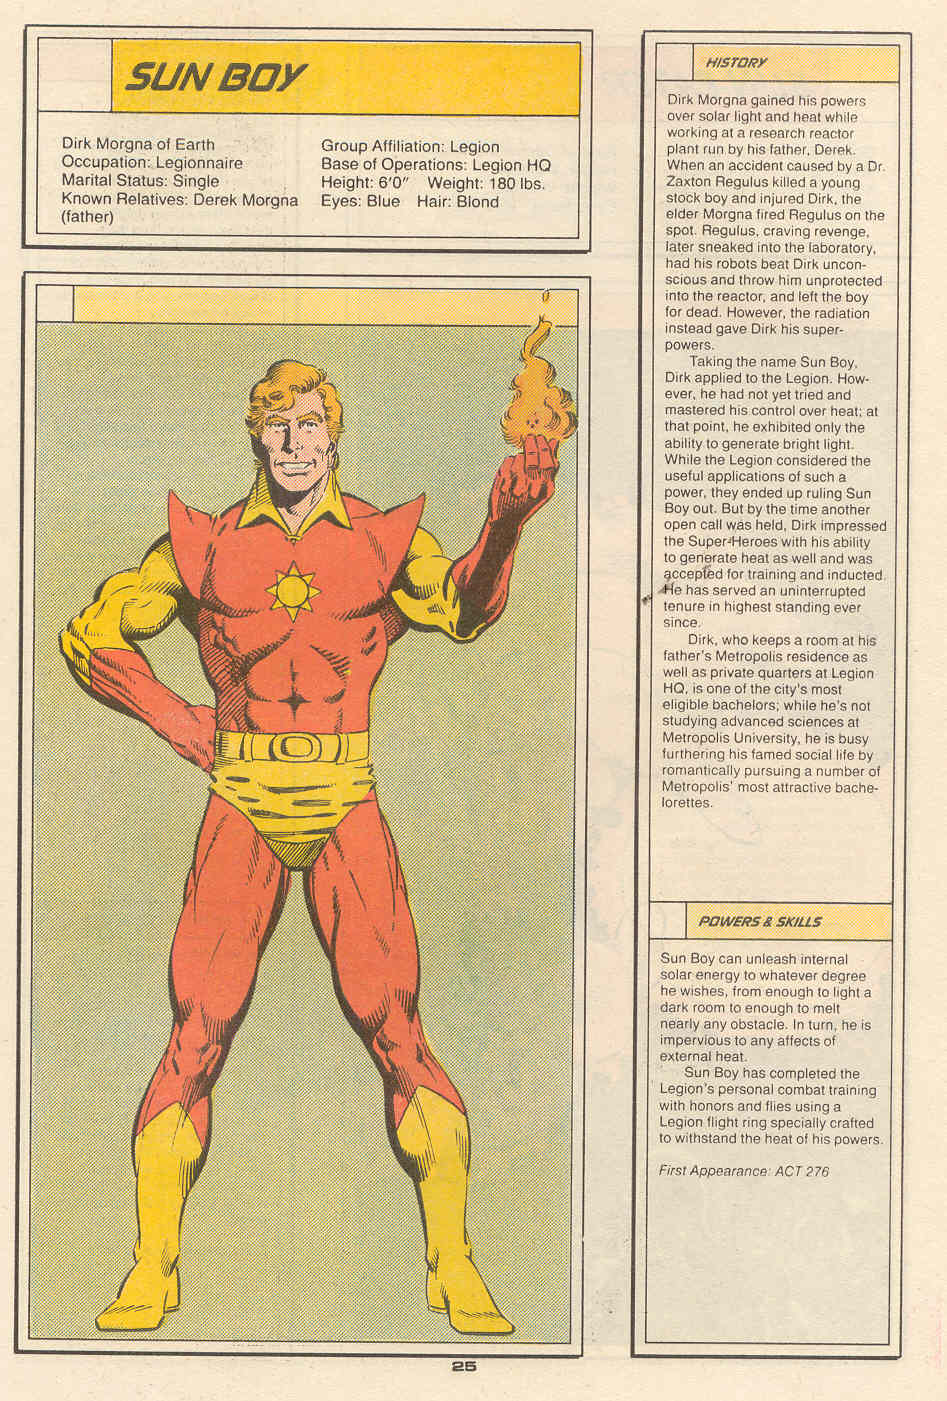 Sun Boy by Dan Jurgens and Jim Sanders - Who's Who in the Legion of Super-Heroes #6